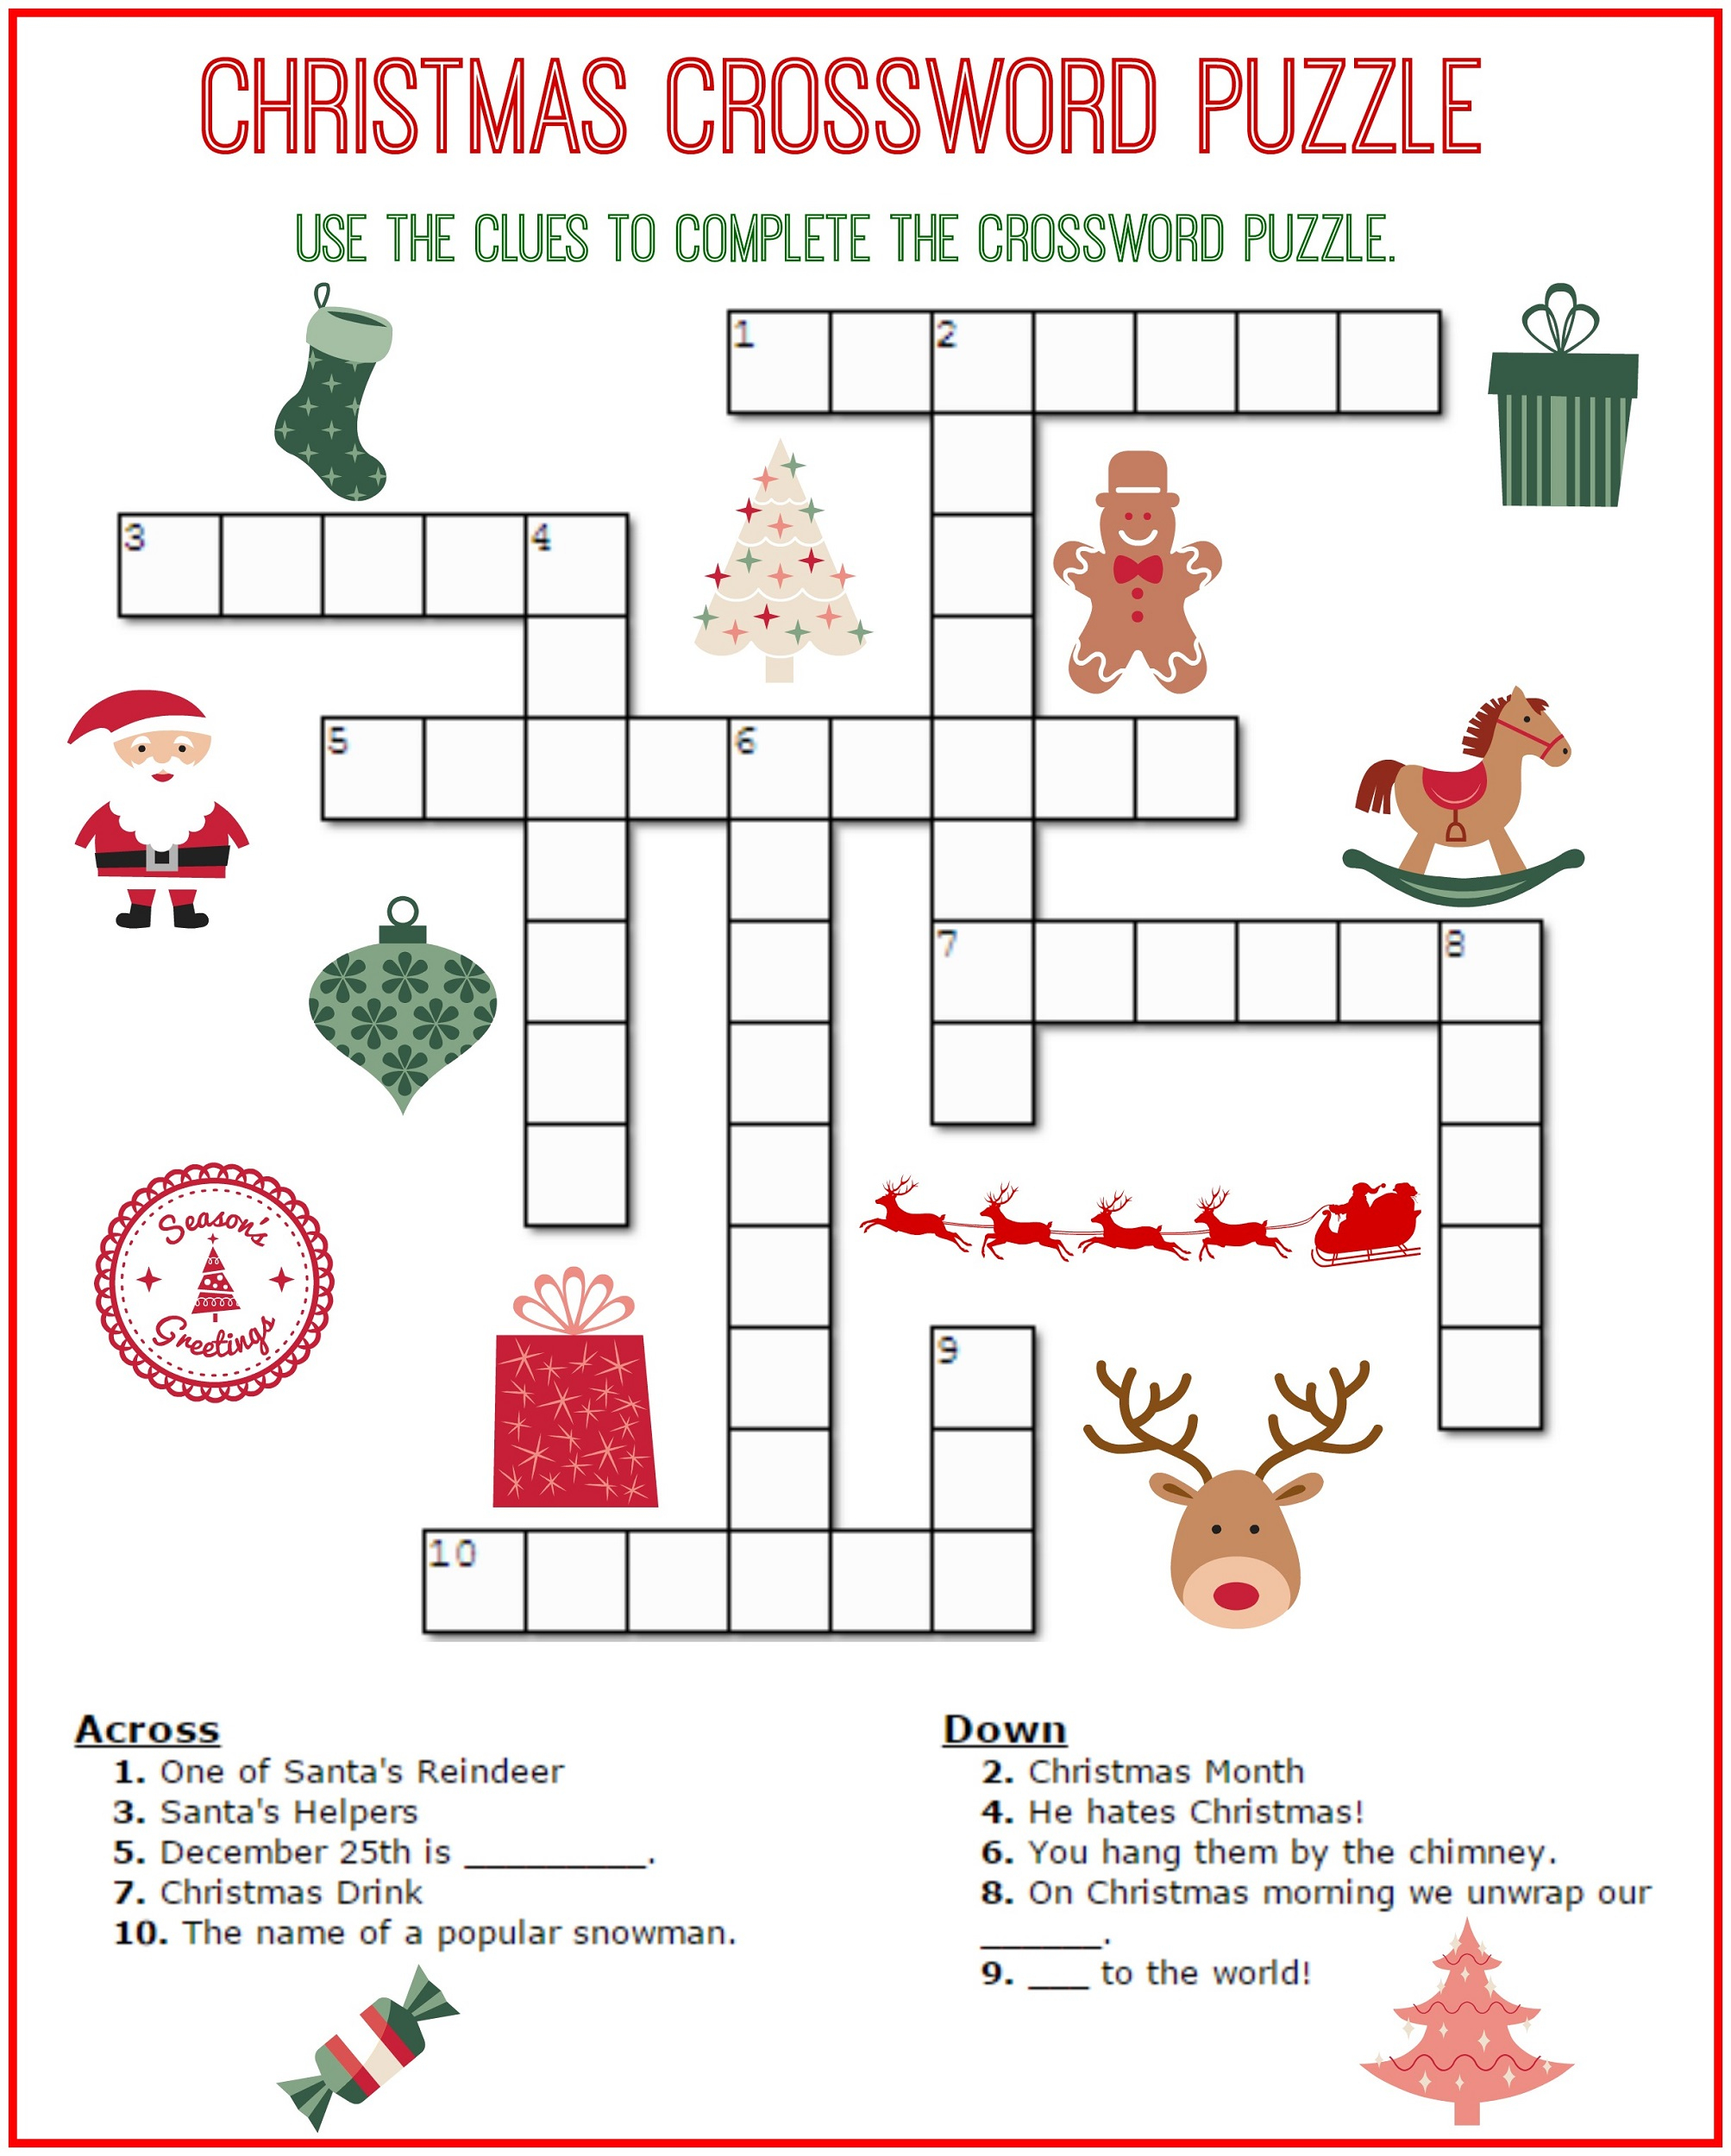 Crossword Puzzle Kids Printable 2017 | Kiddo Shelter - Printable Puzzles Hints